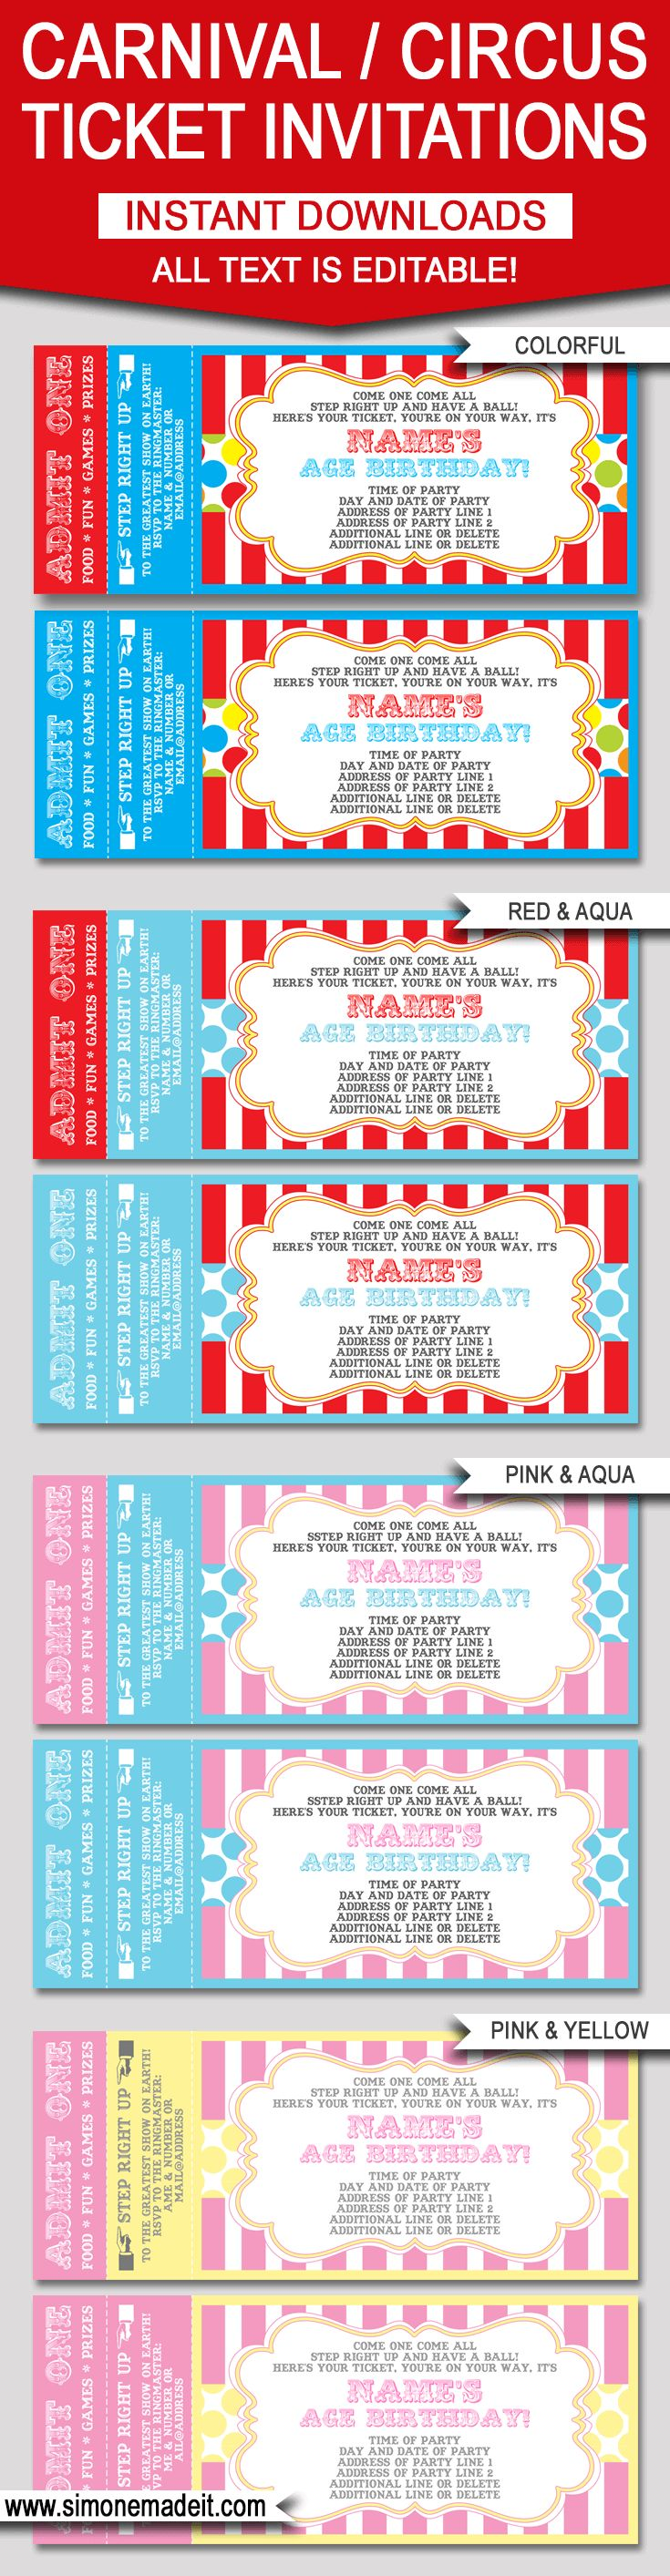 Editable Carnival Ticket Invitations | Editable Circus Ticket Invitations | Birthday Party | Big Top | Editable and Printable Invitation Templates | INSTANT DOWNLOADS $7.50 via simonemadeit.com